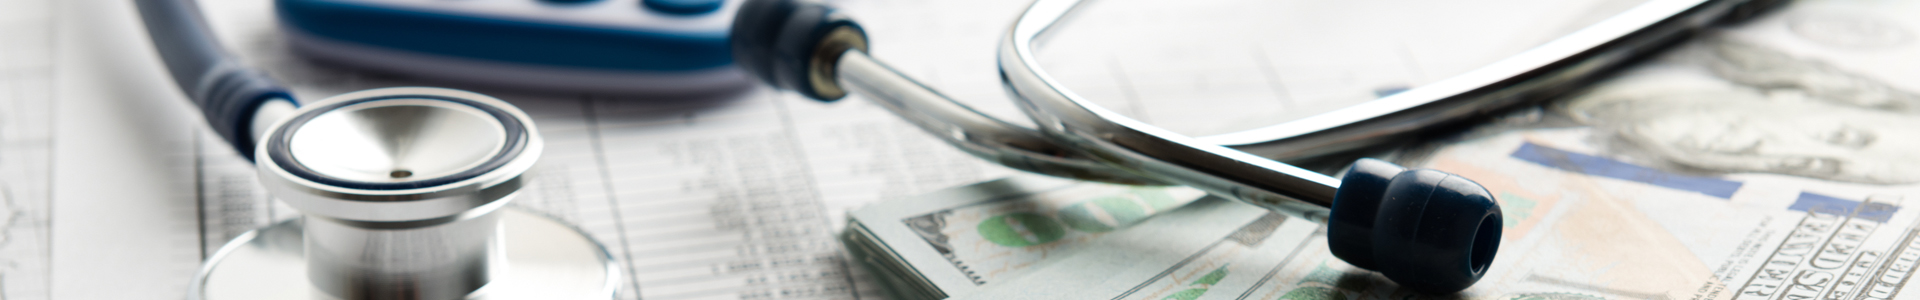 Stethoscope money - Health Savings